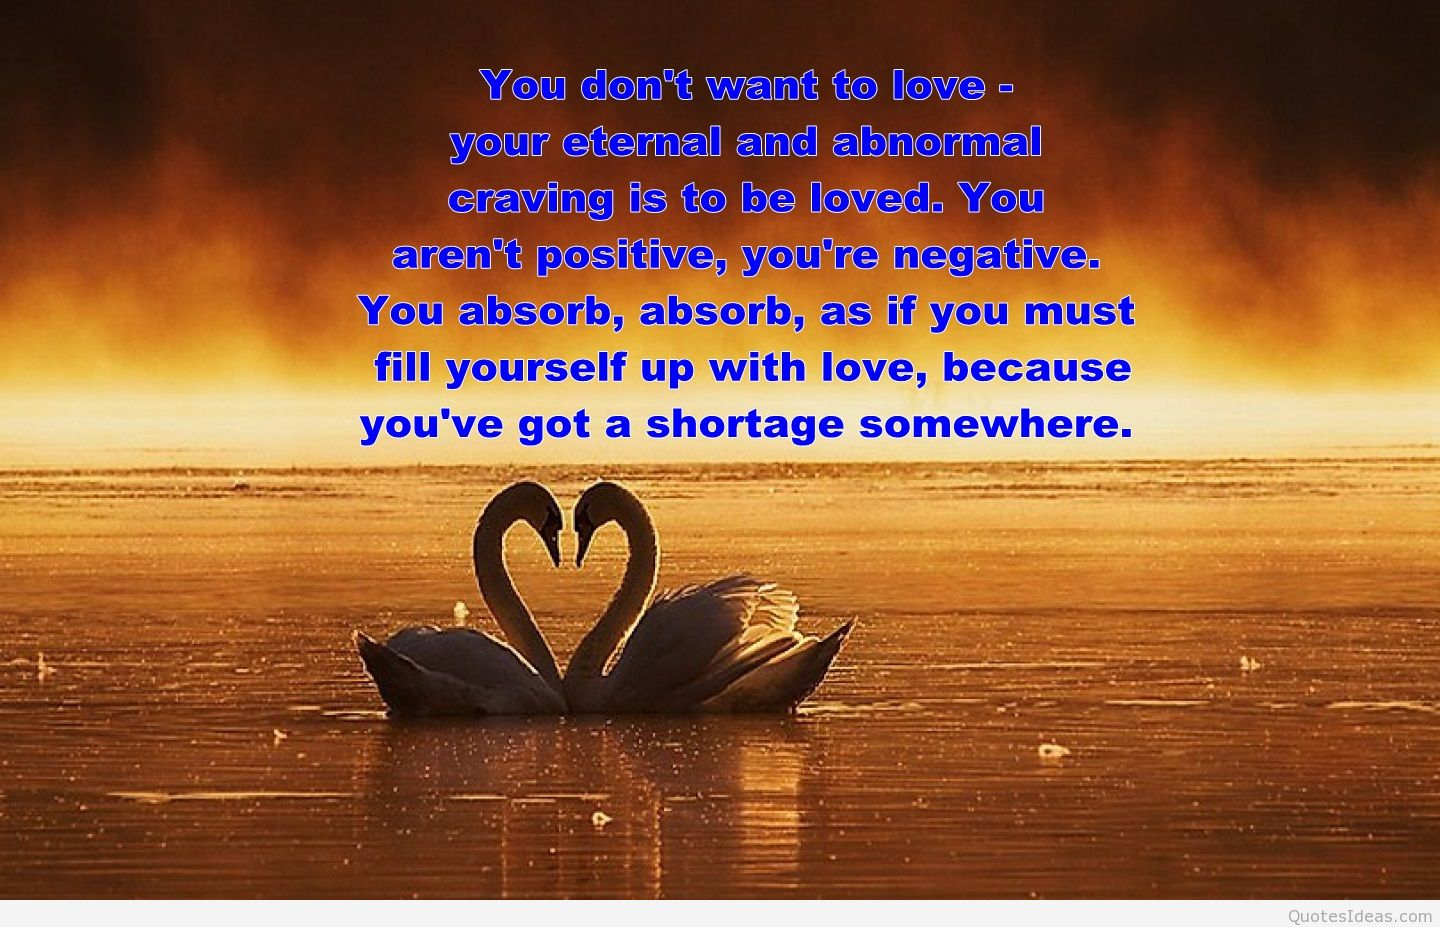 Quotes About Love: Quotes About Love And Swans. QuotesGram